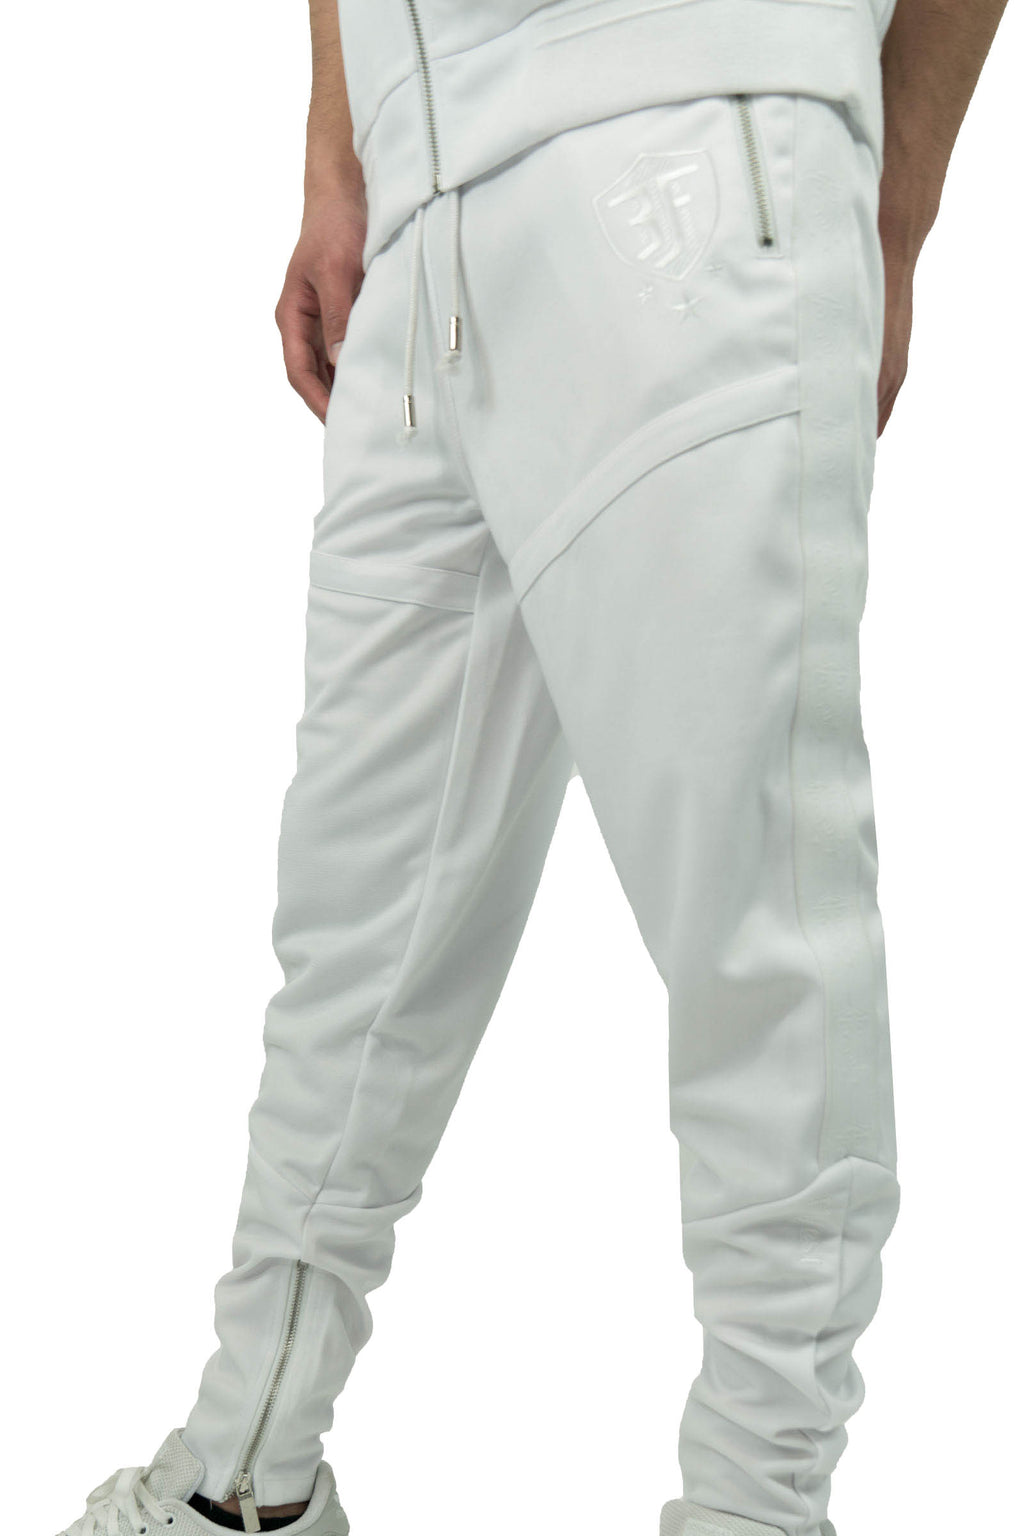 Cleveland Track Pant - Sweatpants - Born Fly